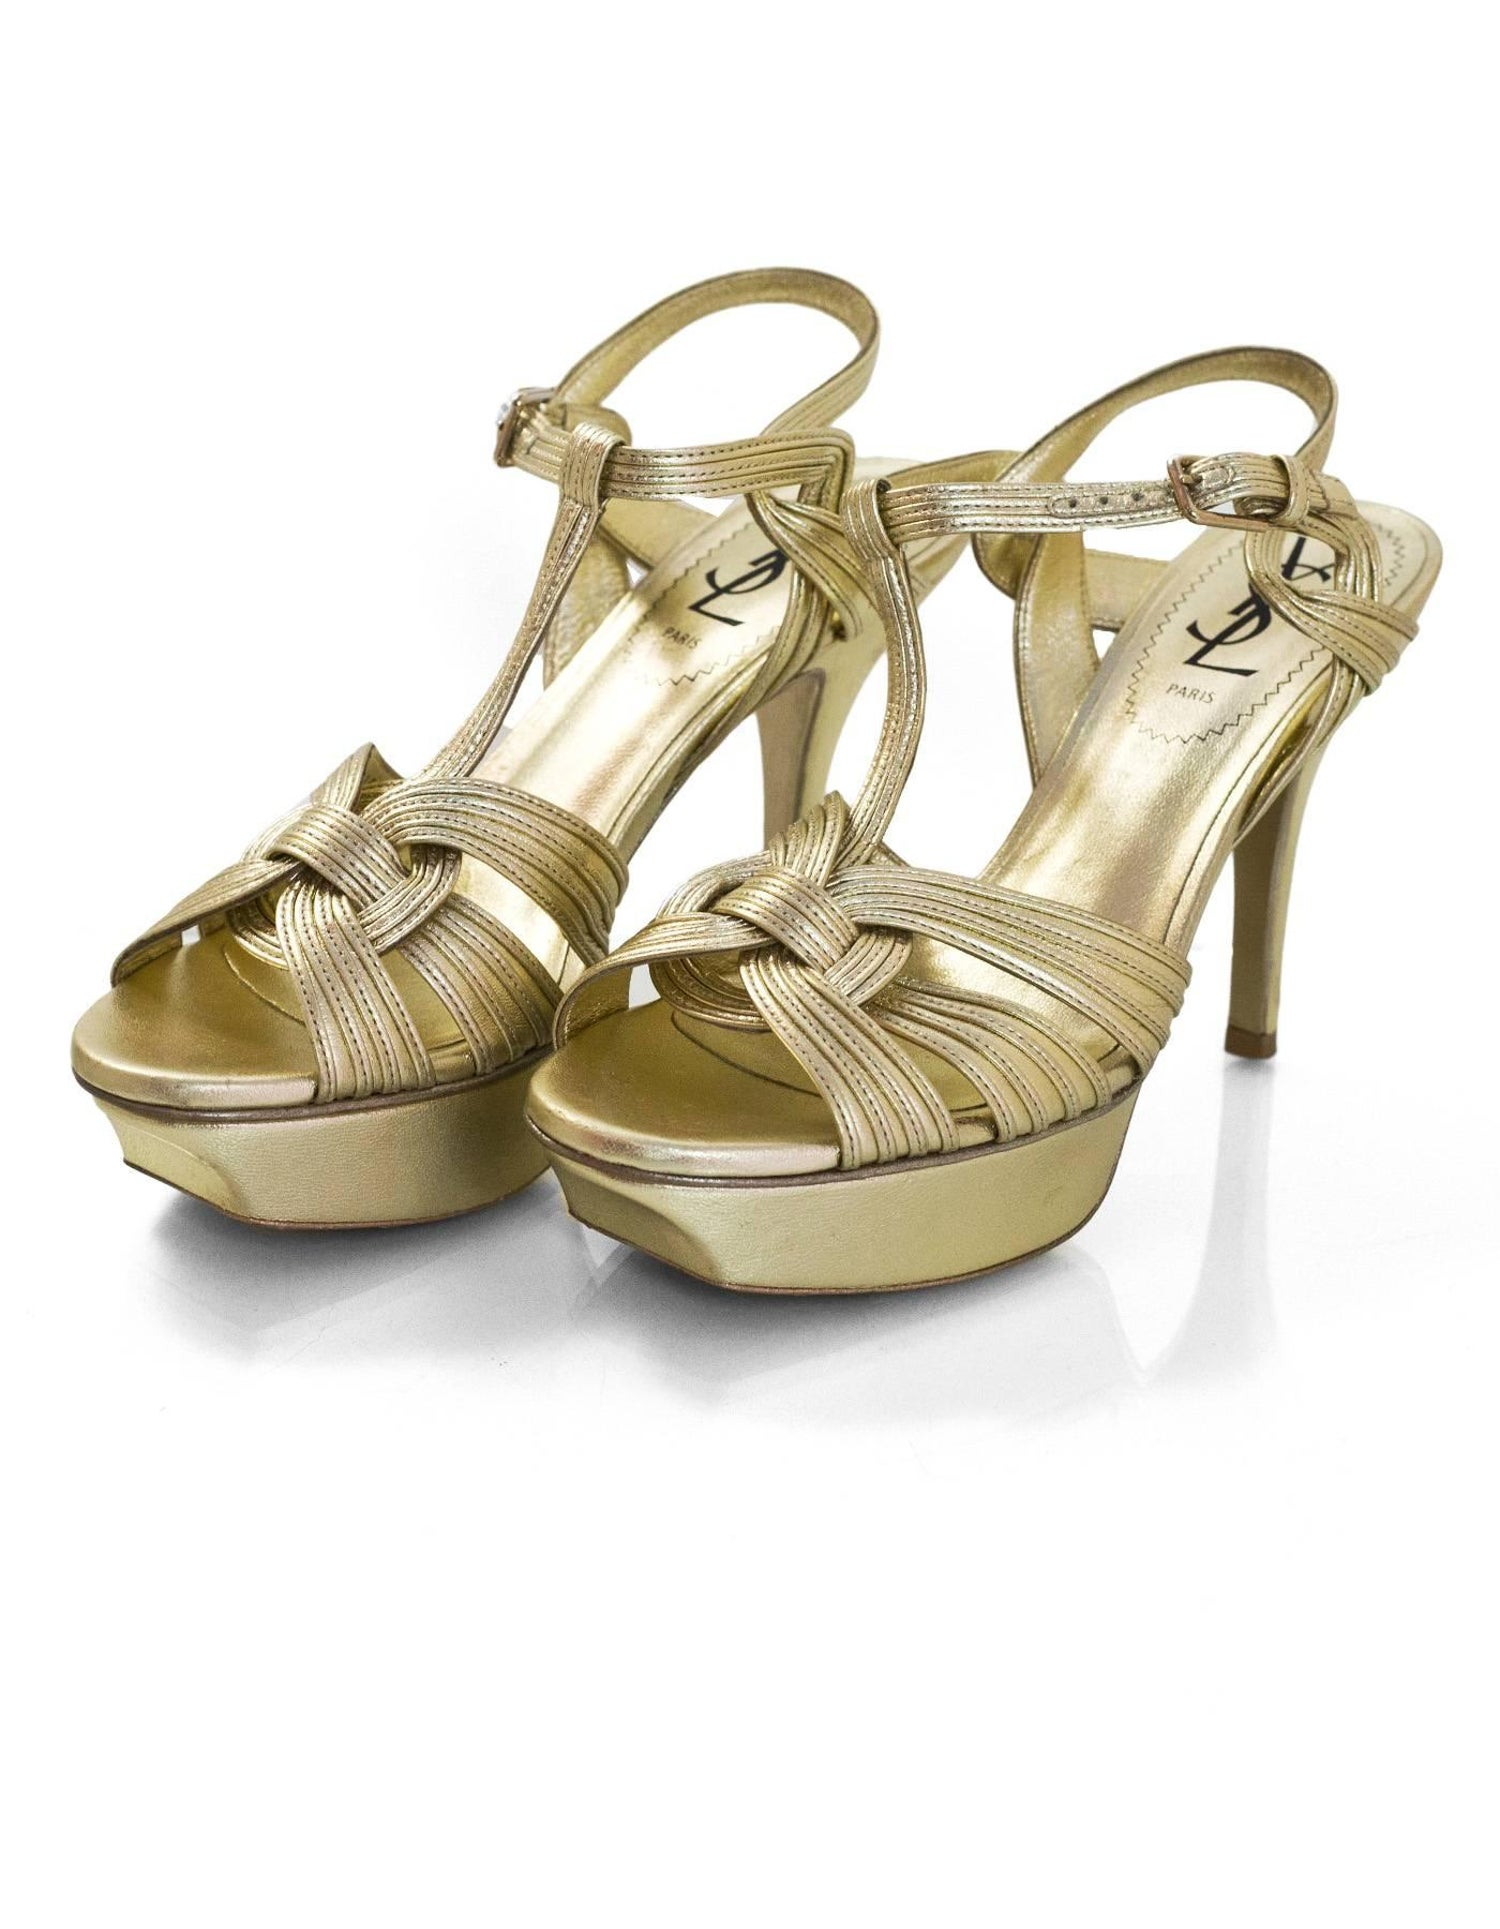 220d98fe YSL Gold Leather Tribute 75 Sandals Sz 36 with Box